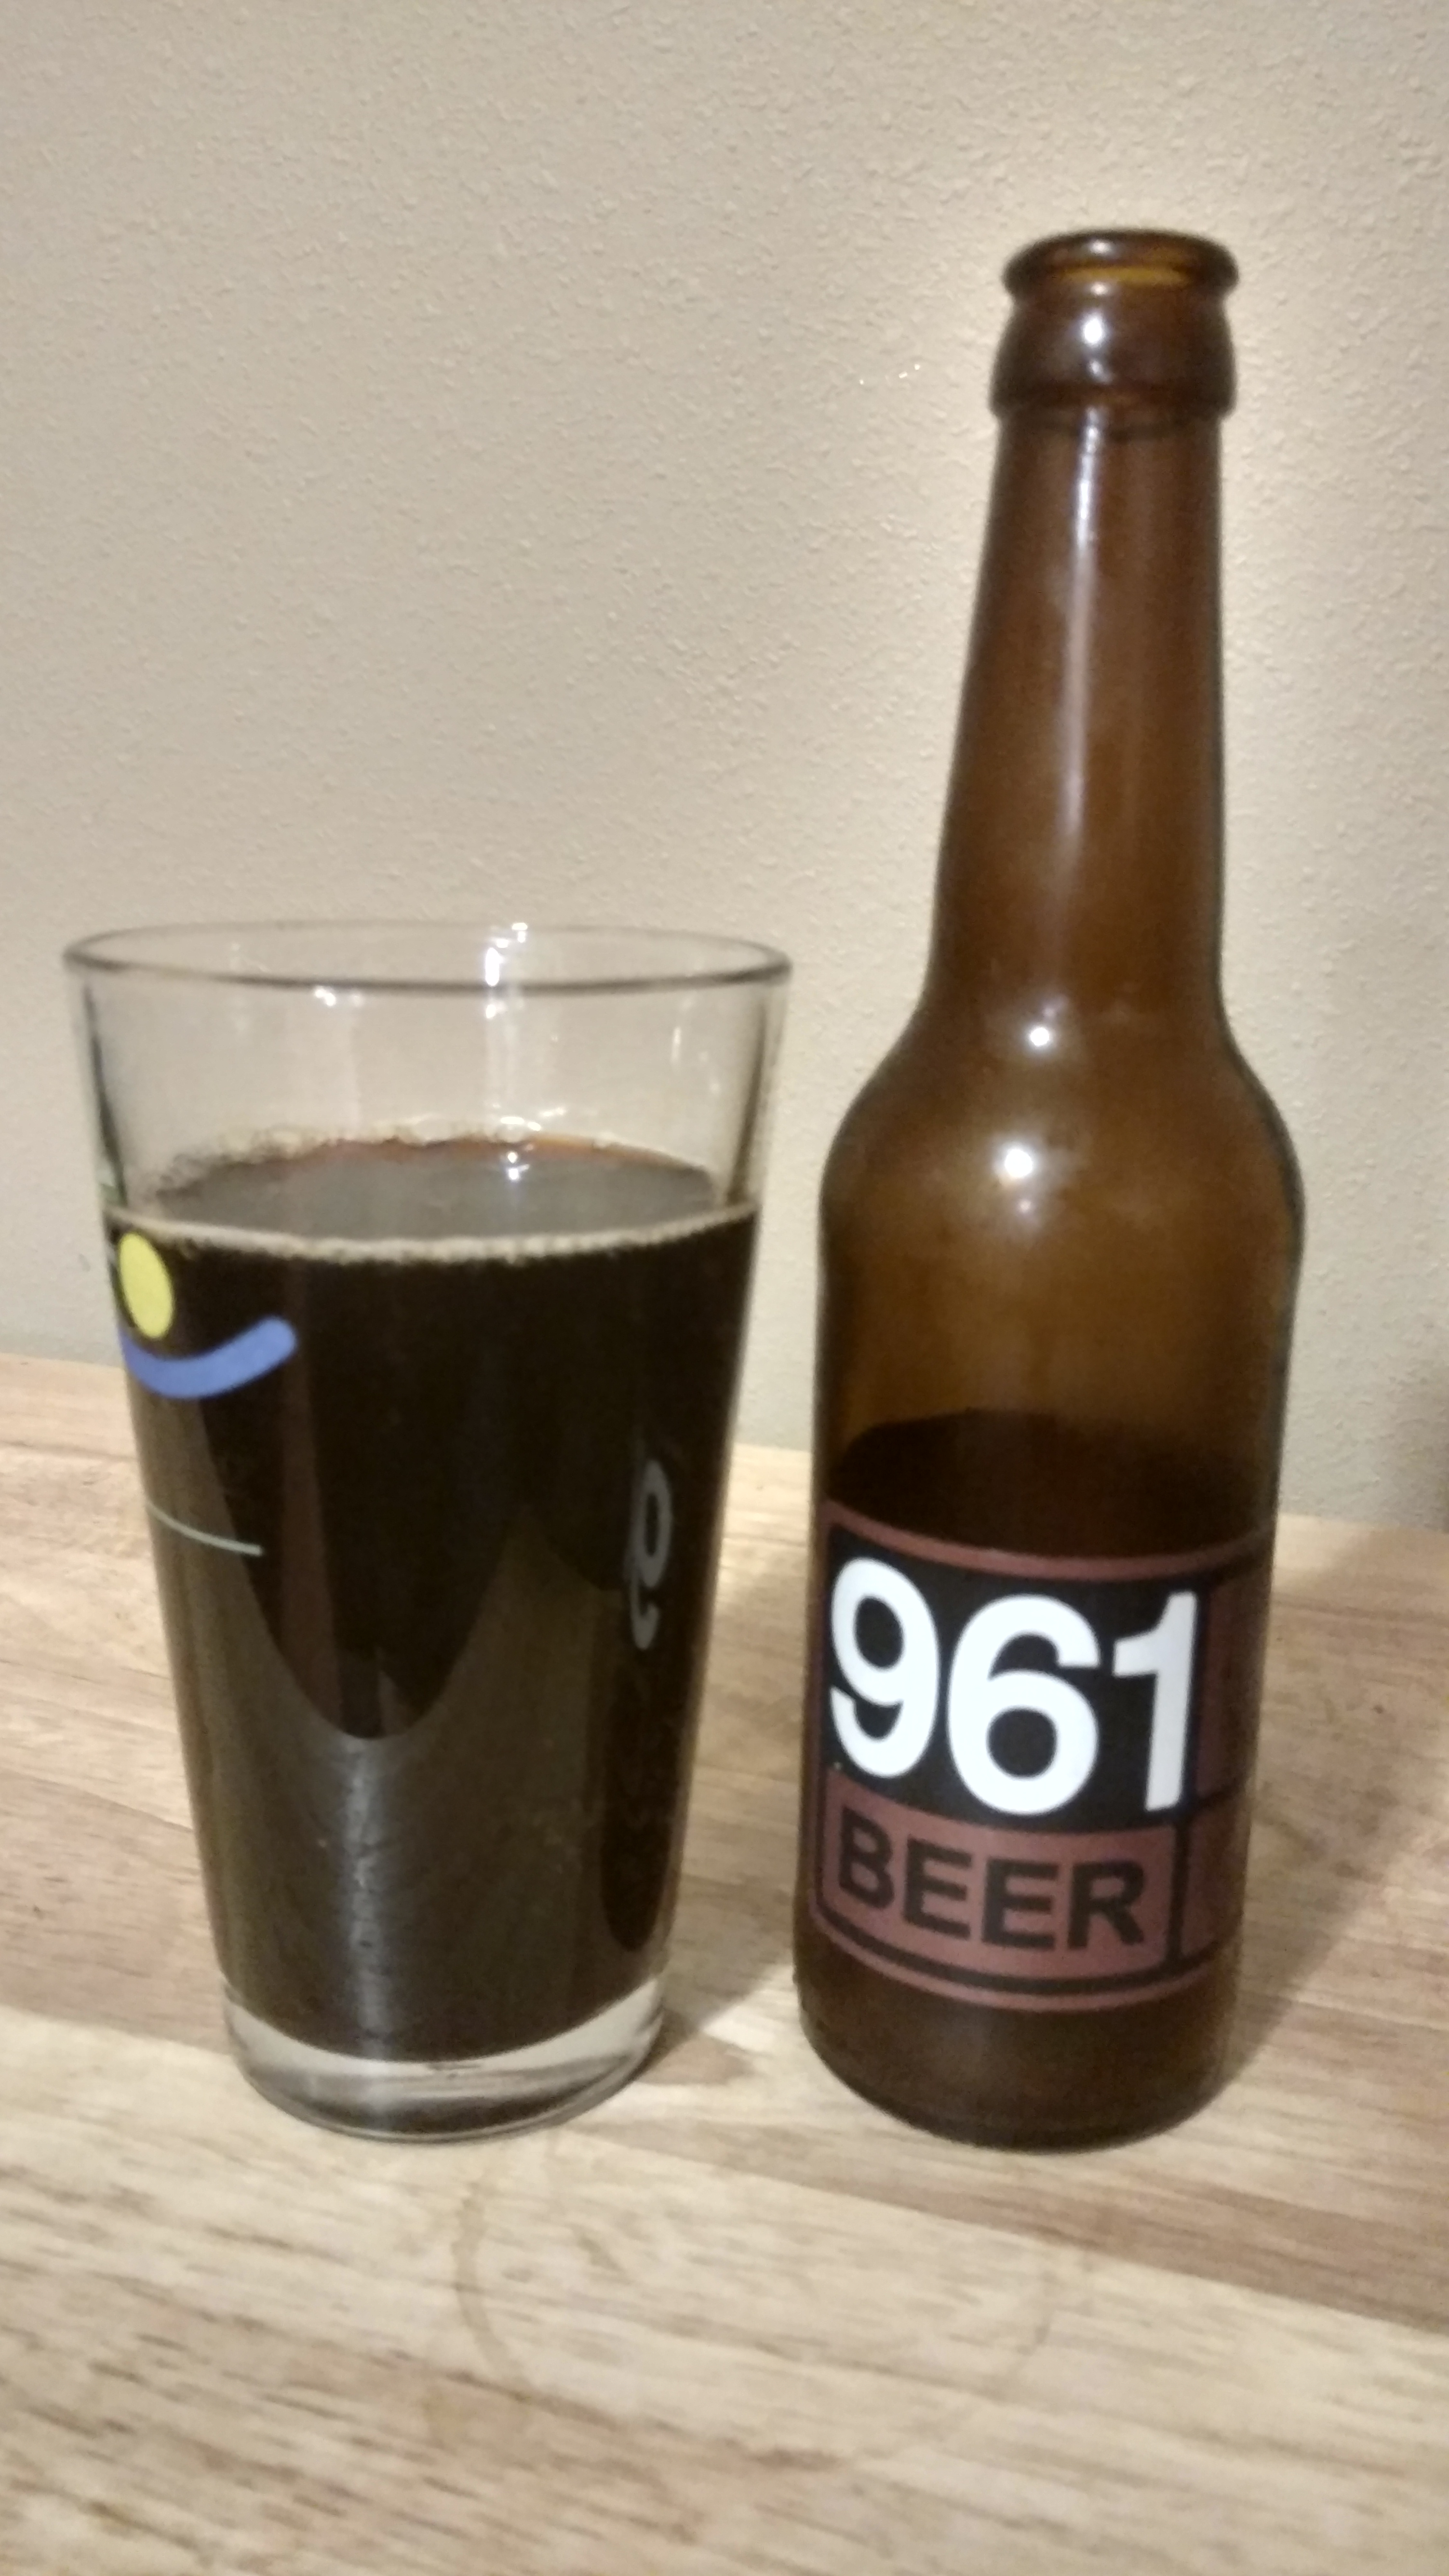 961 Beer: Lauching a Lebanese Beer Company Essay